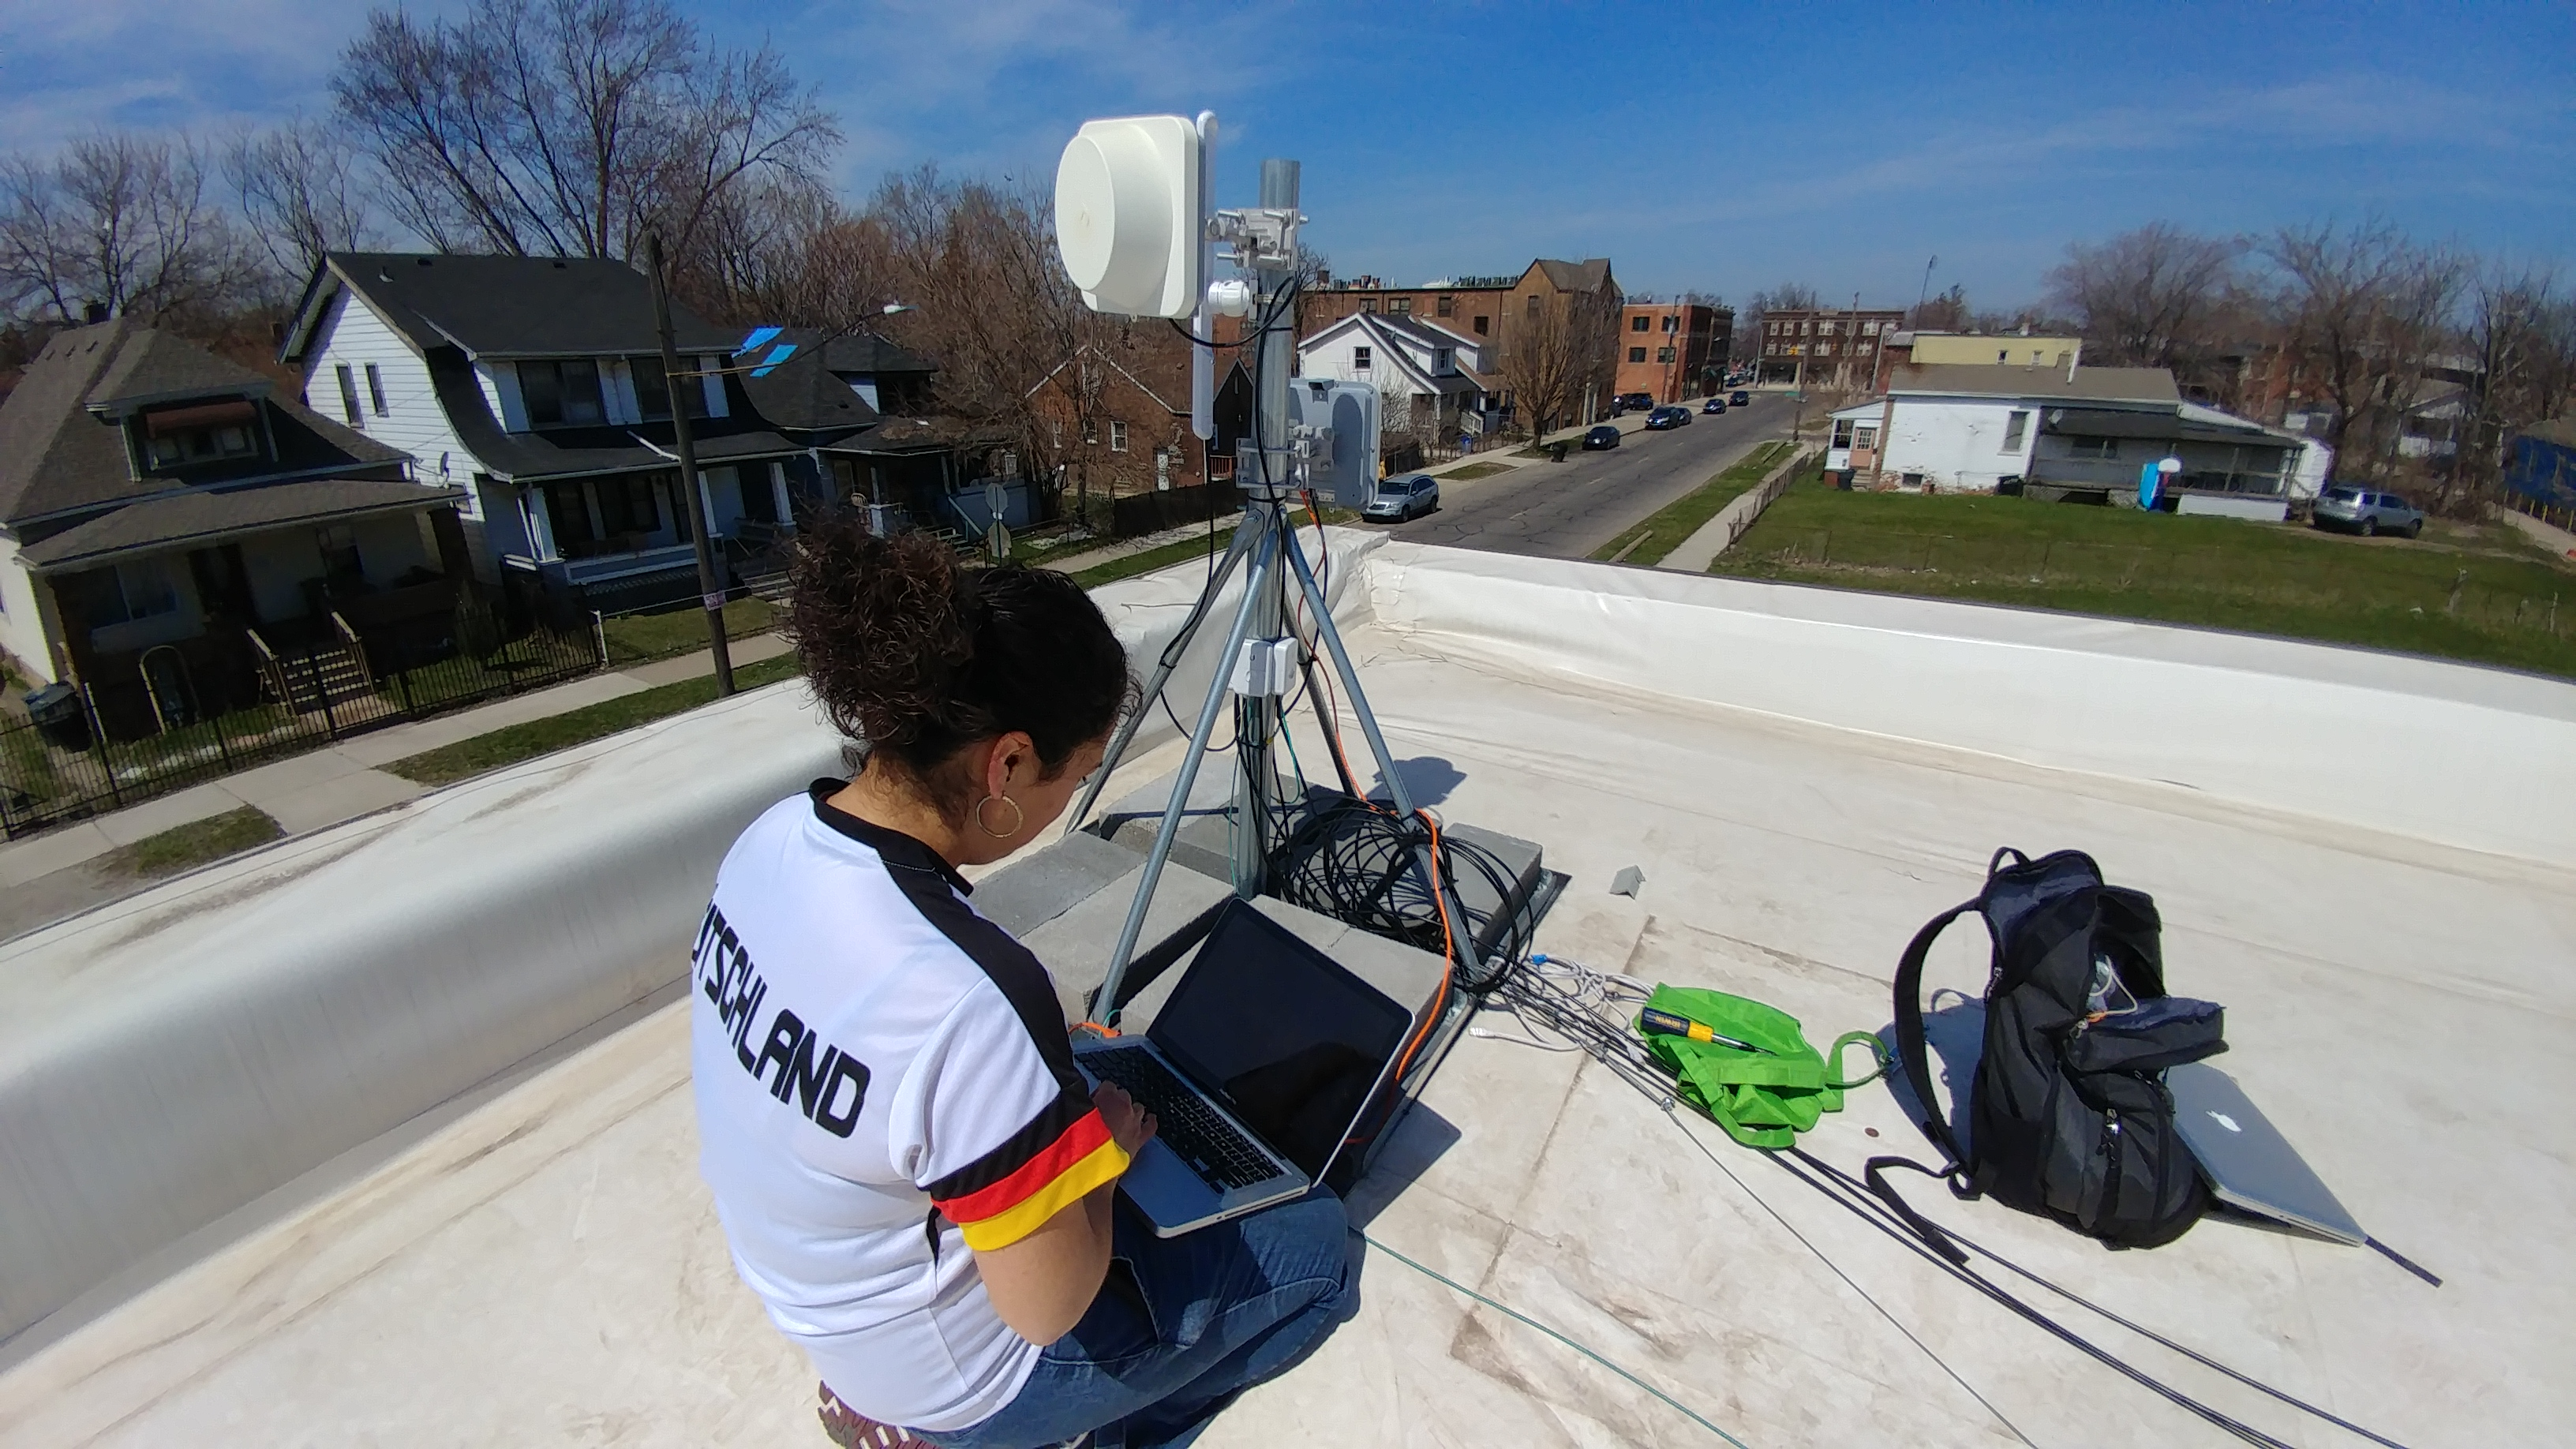 a digital steward on a rooftop, holding a laptop and setting up a large wireless antenna.